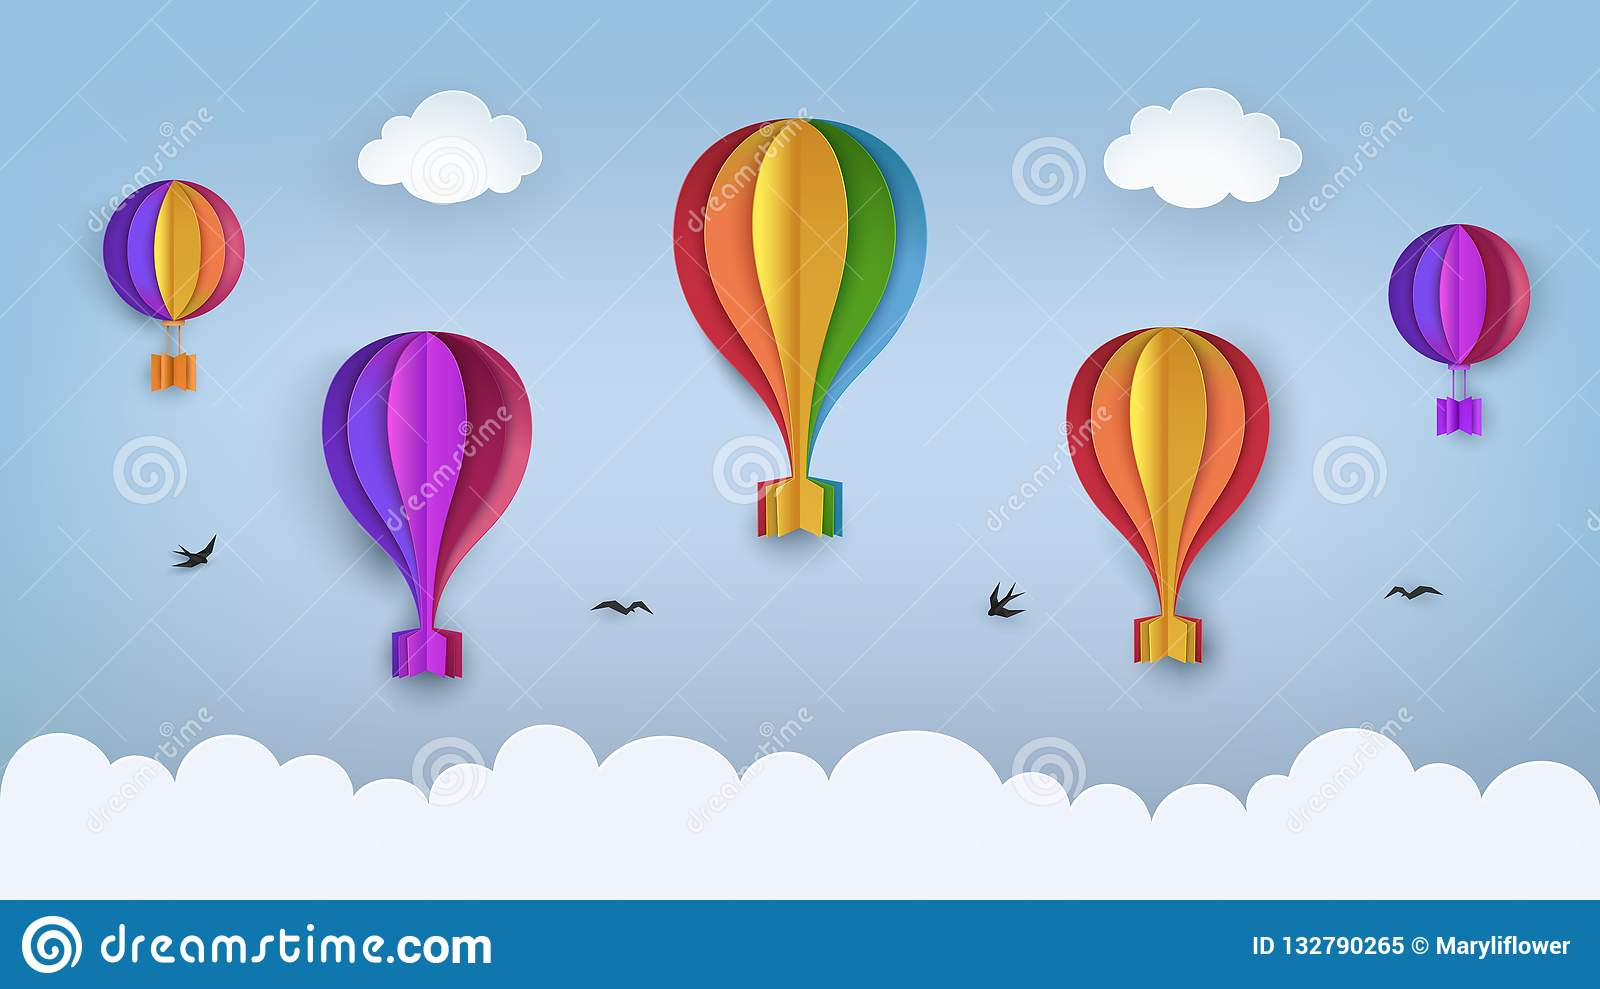 Clear Blue Sky With Clouds Flying Birds Rainbow Colored